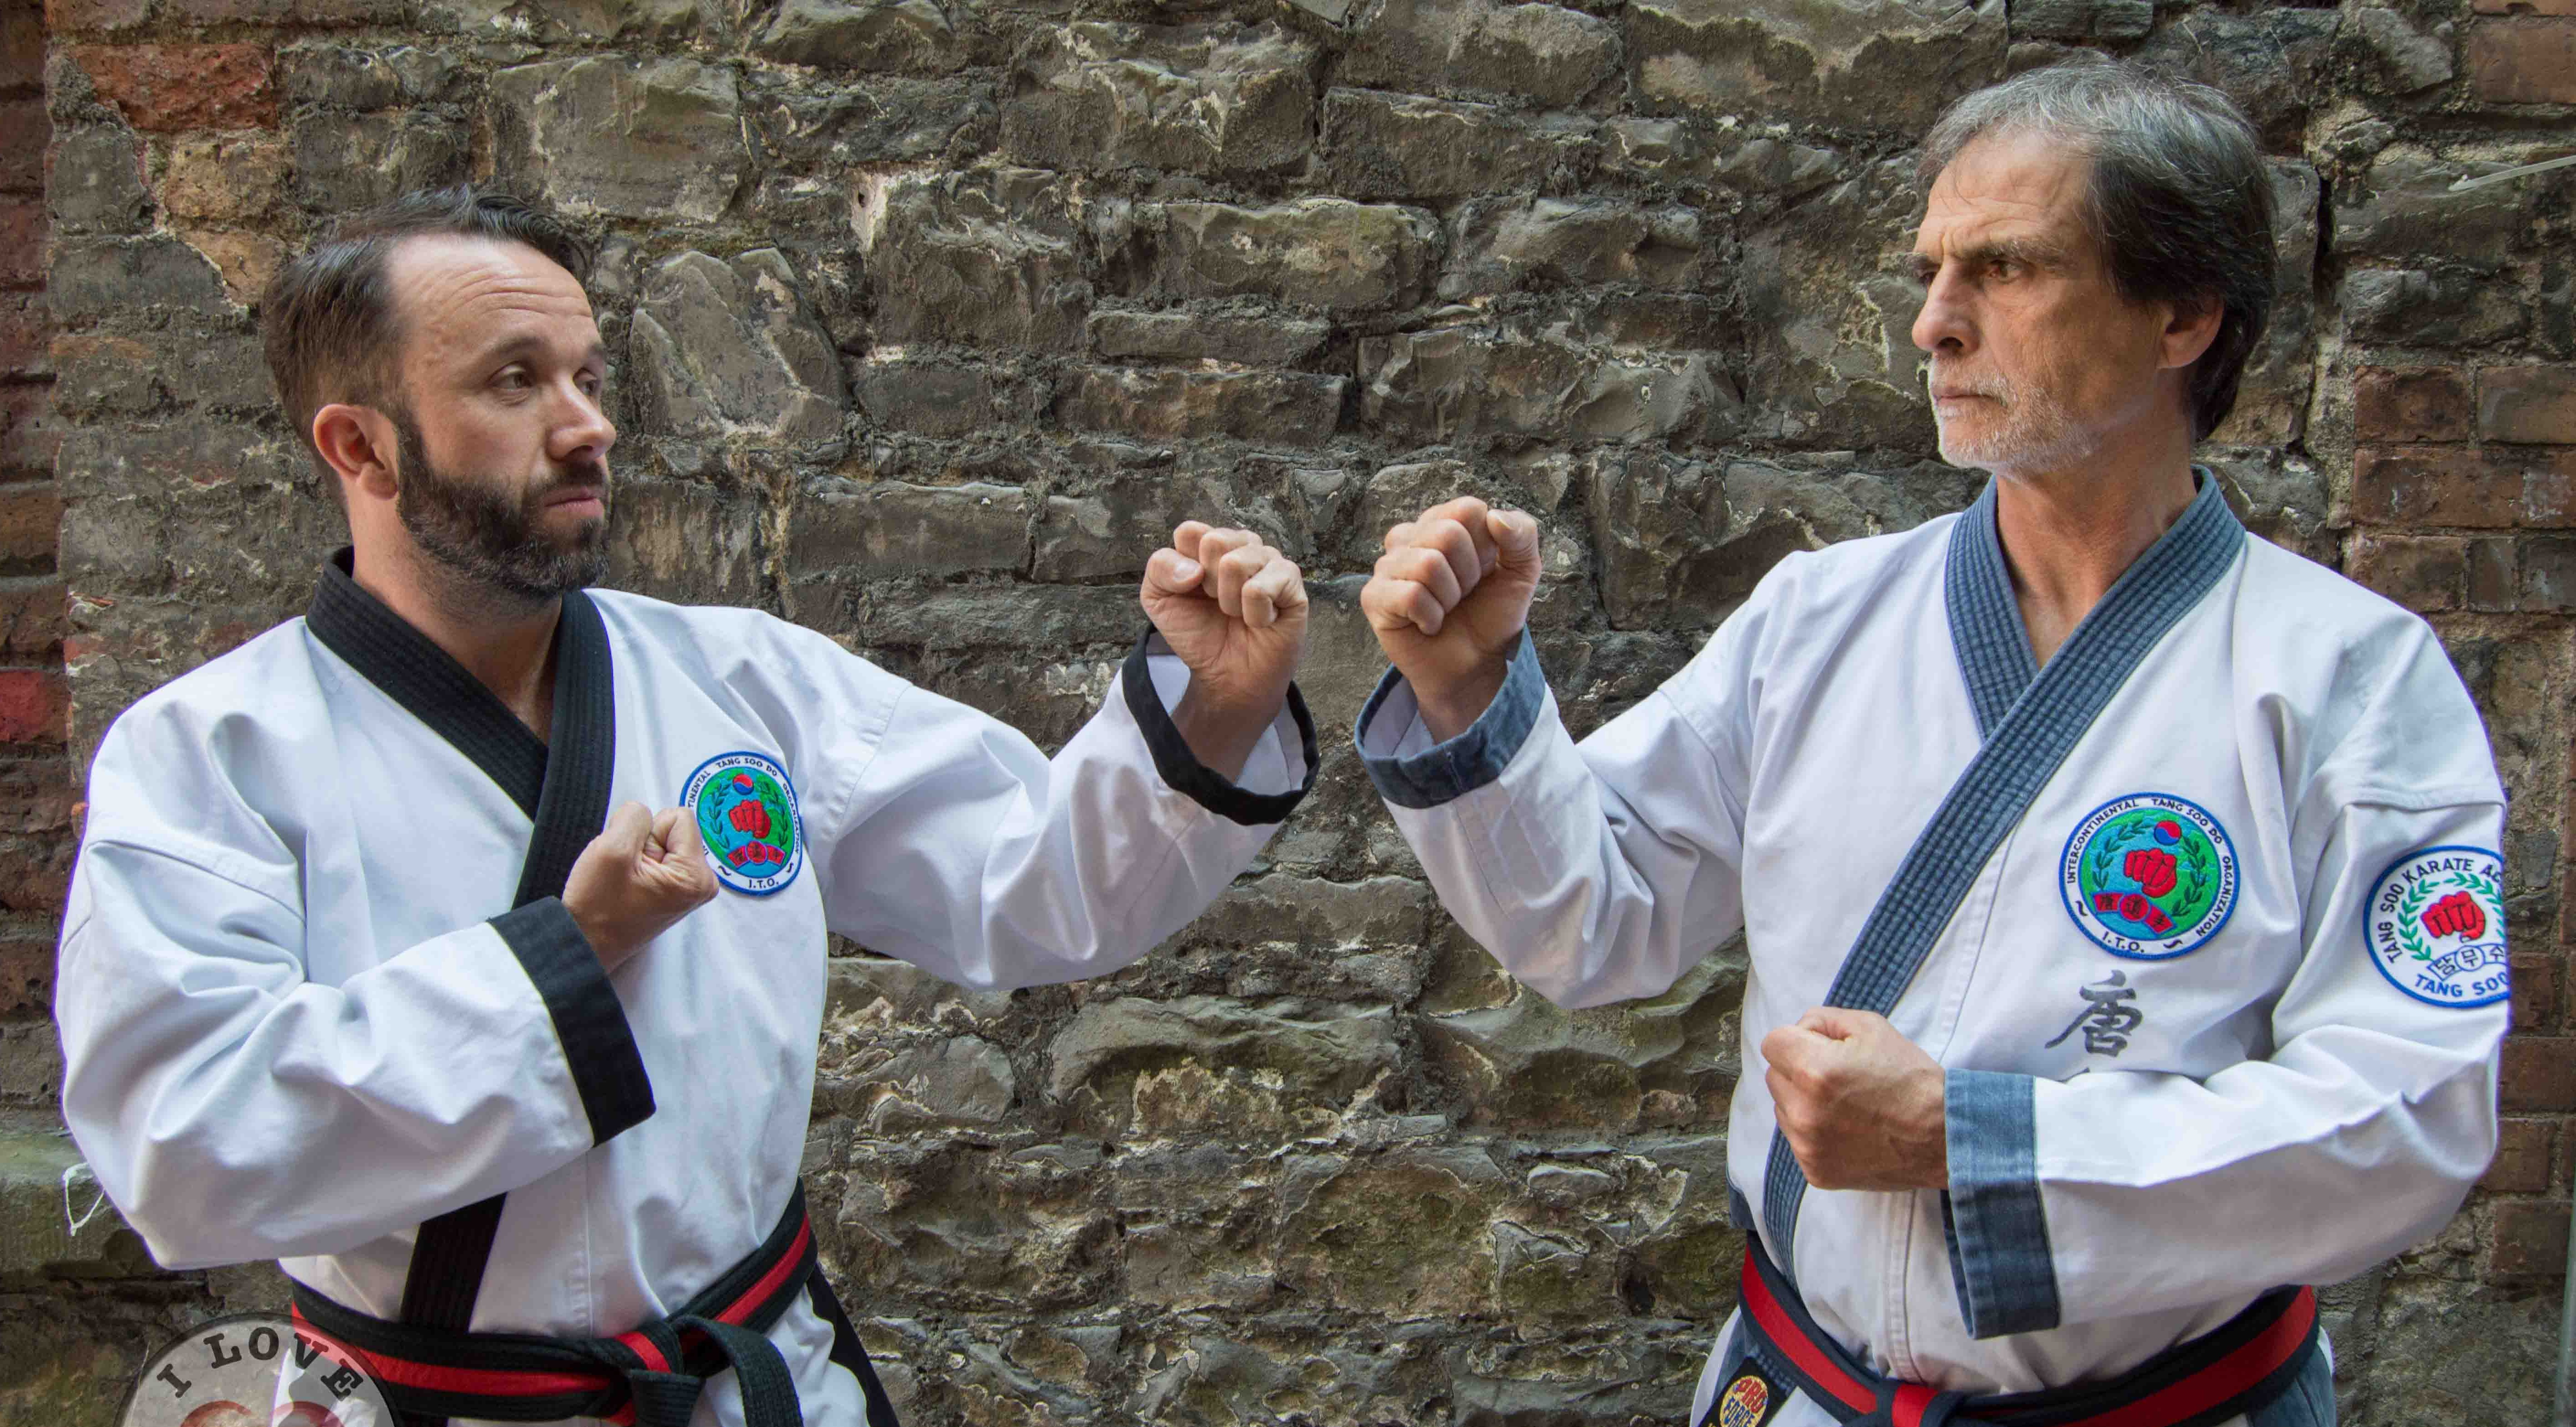 Grandmaster Dominik Giacobbe and Master Pat Forde